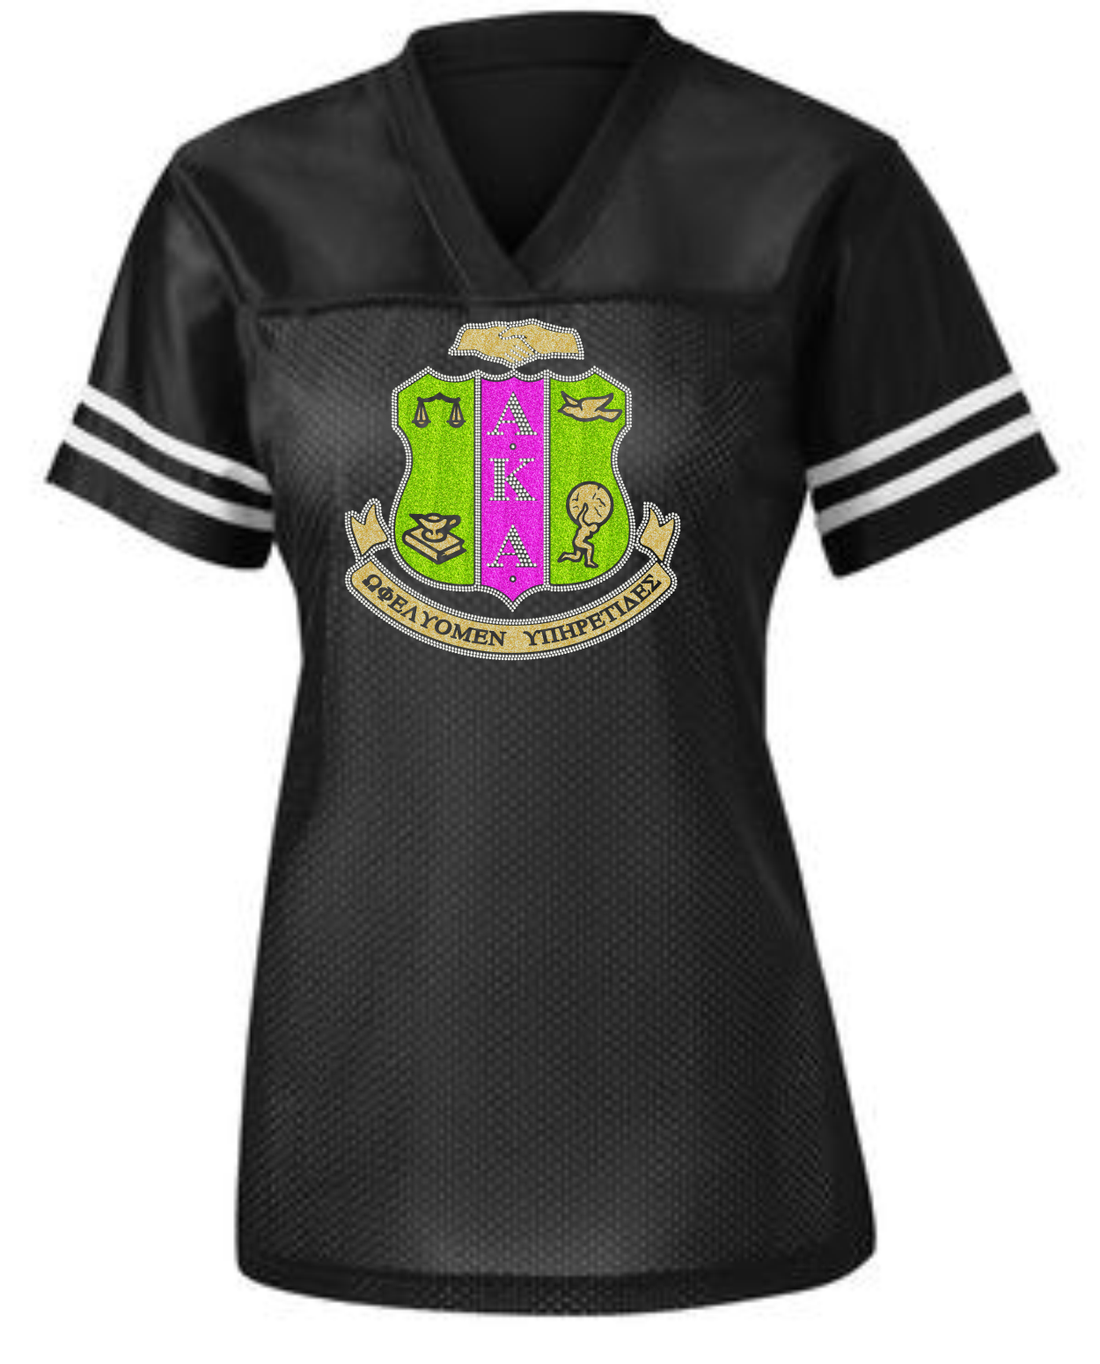 AKA FITTED BLING LADIES JERSEY 2